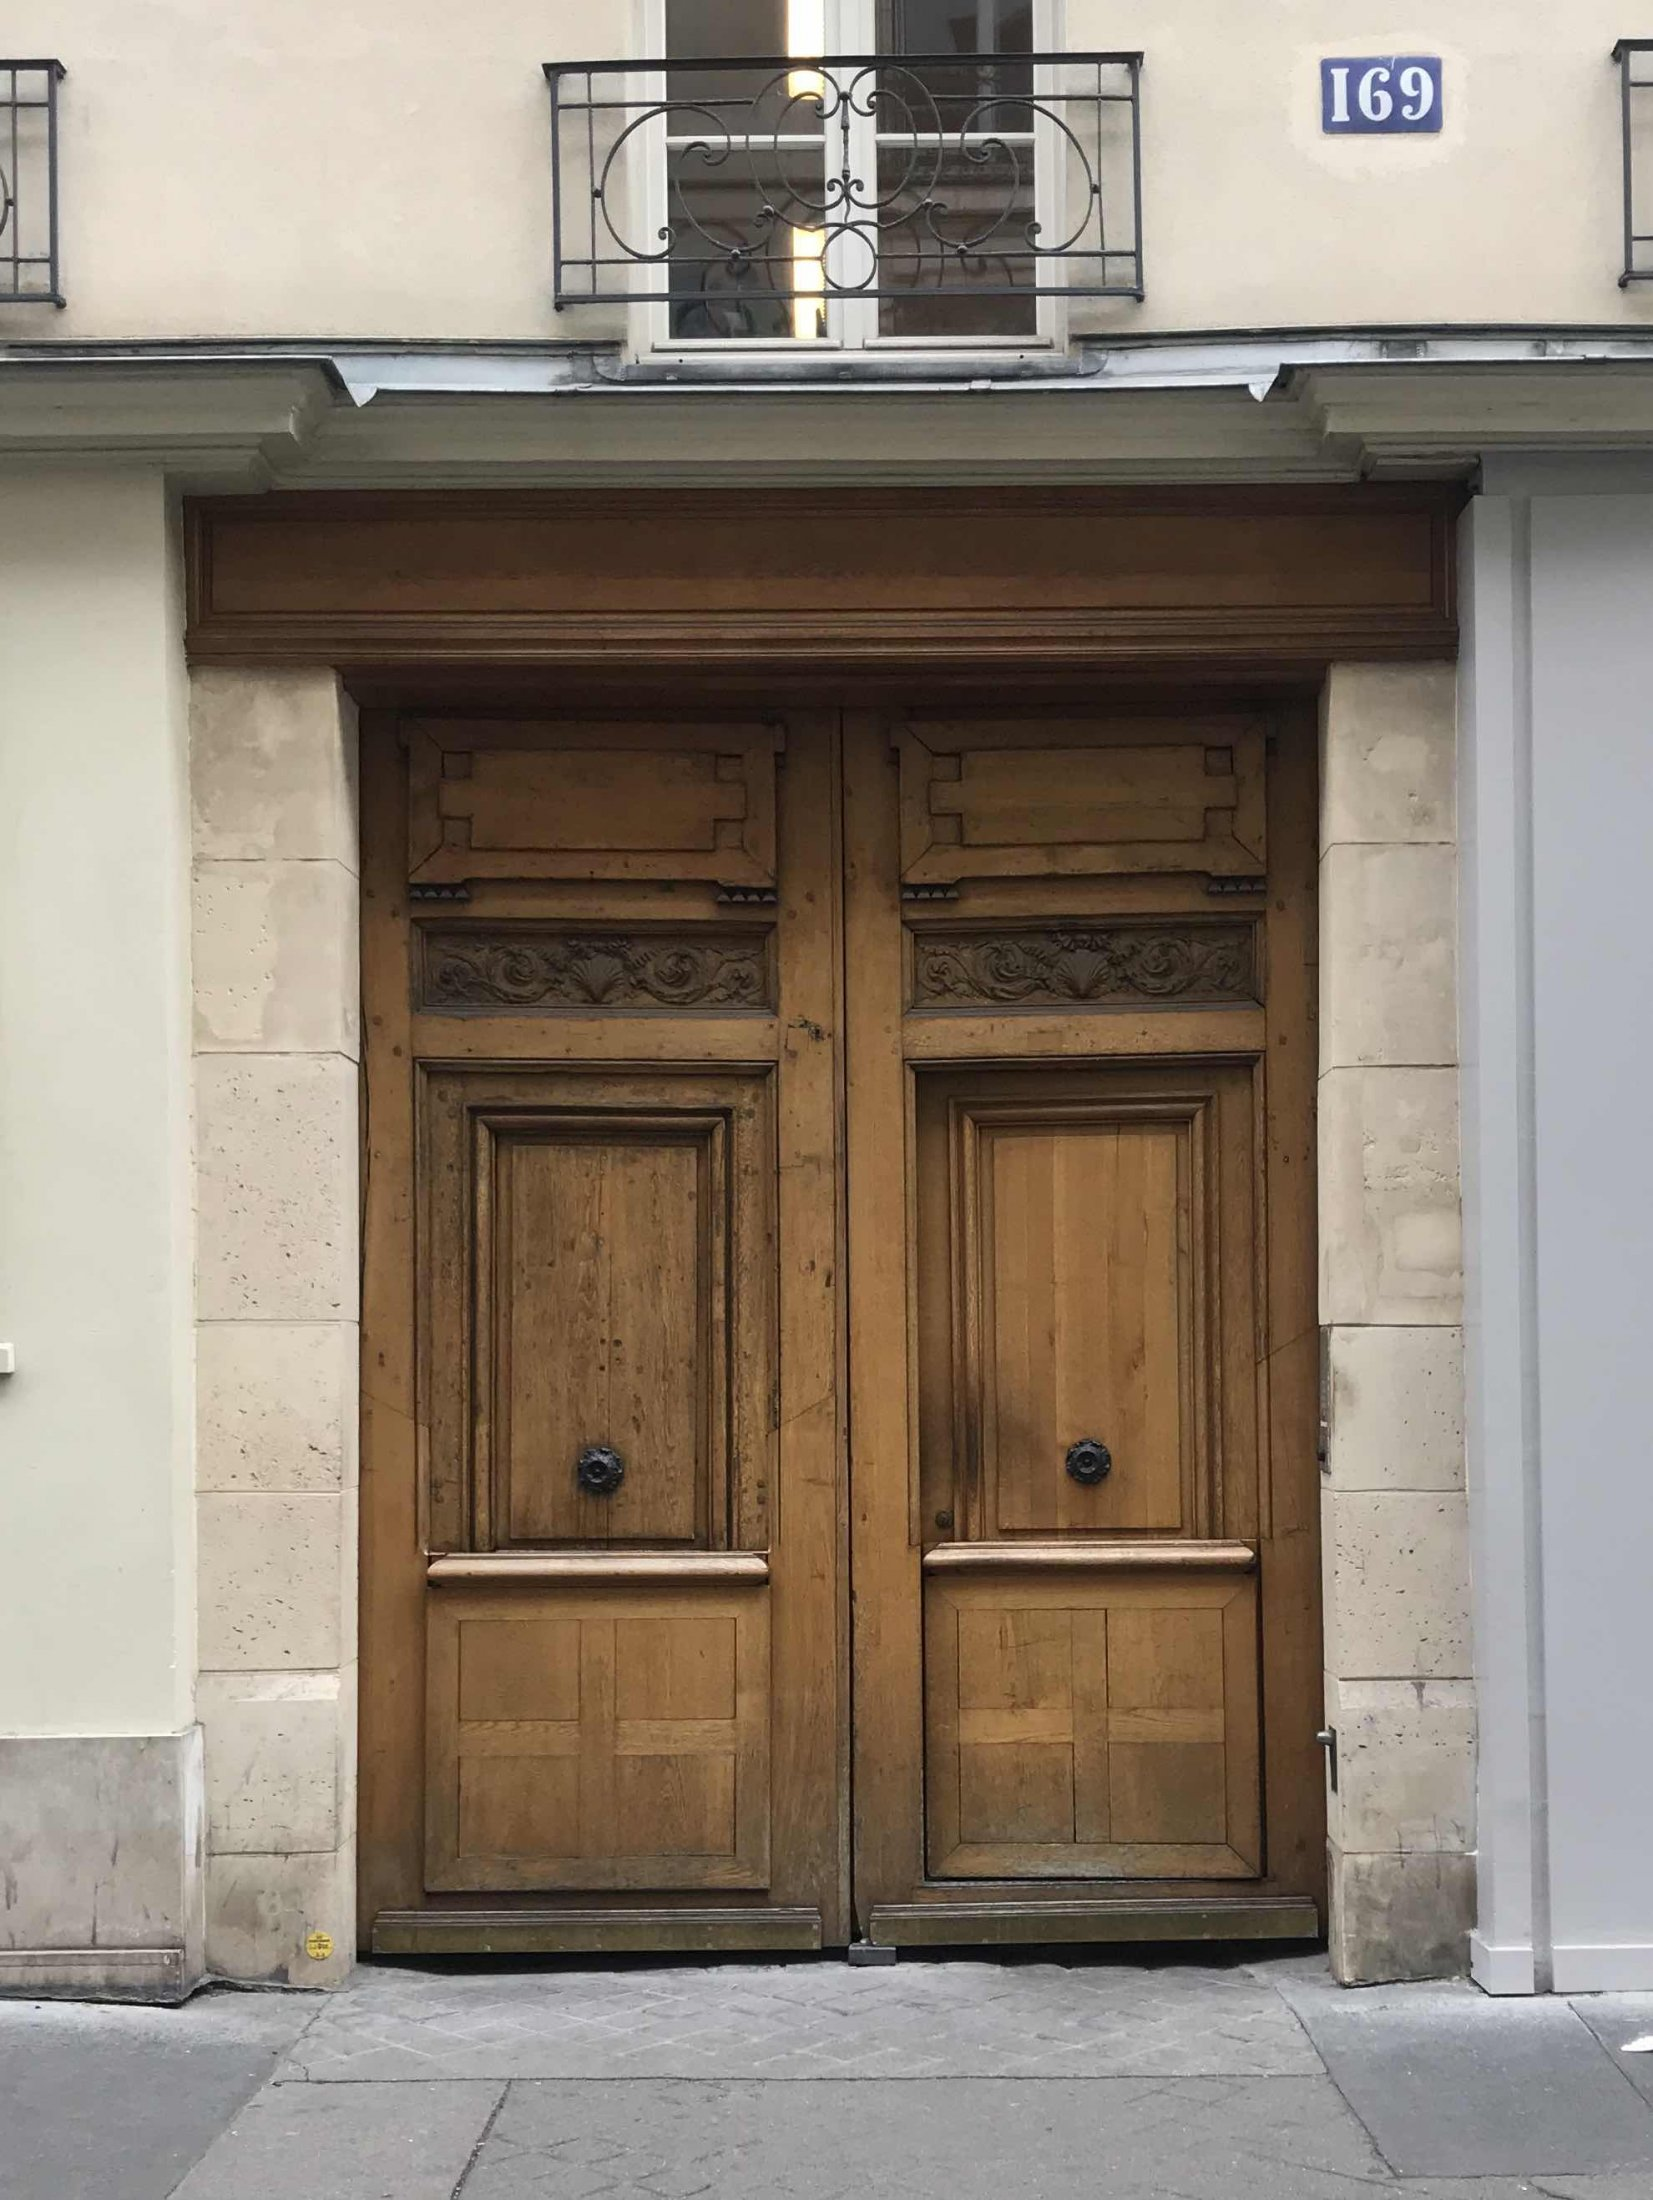 169 RUE SAINT JACQUES